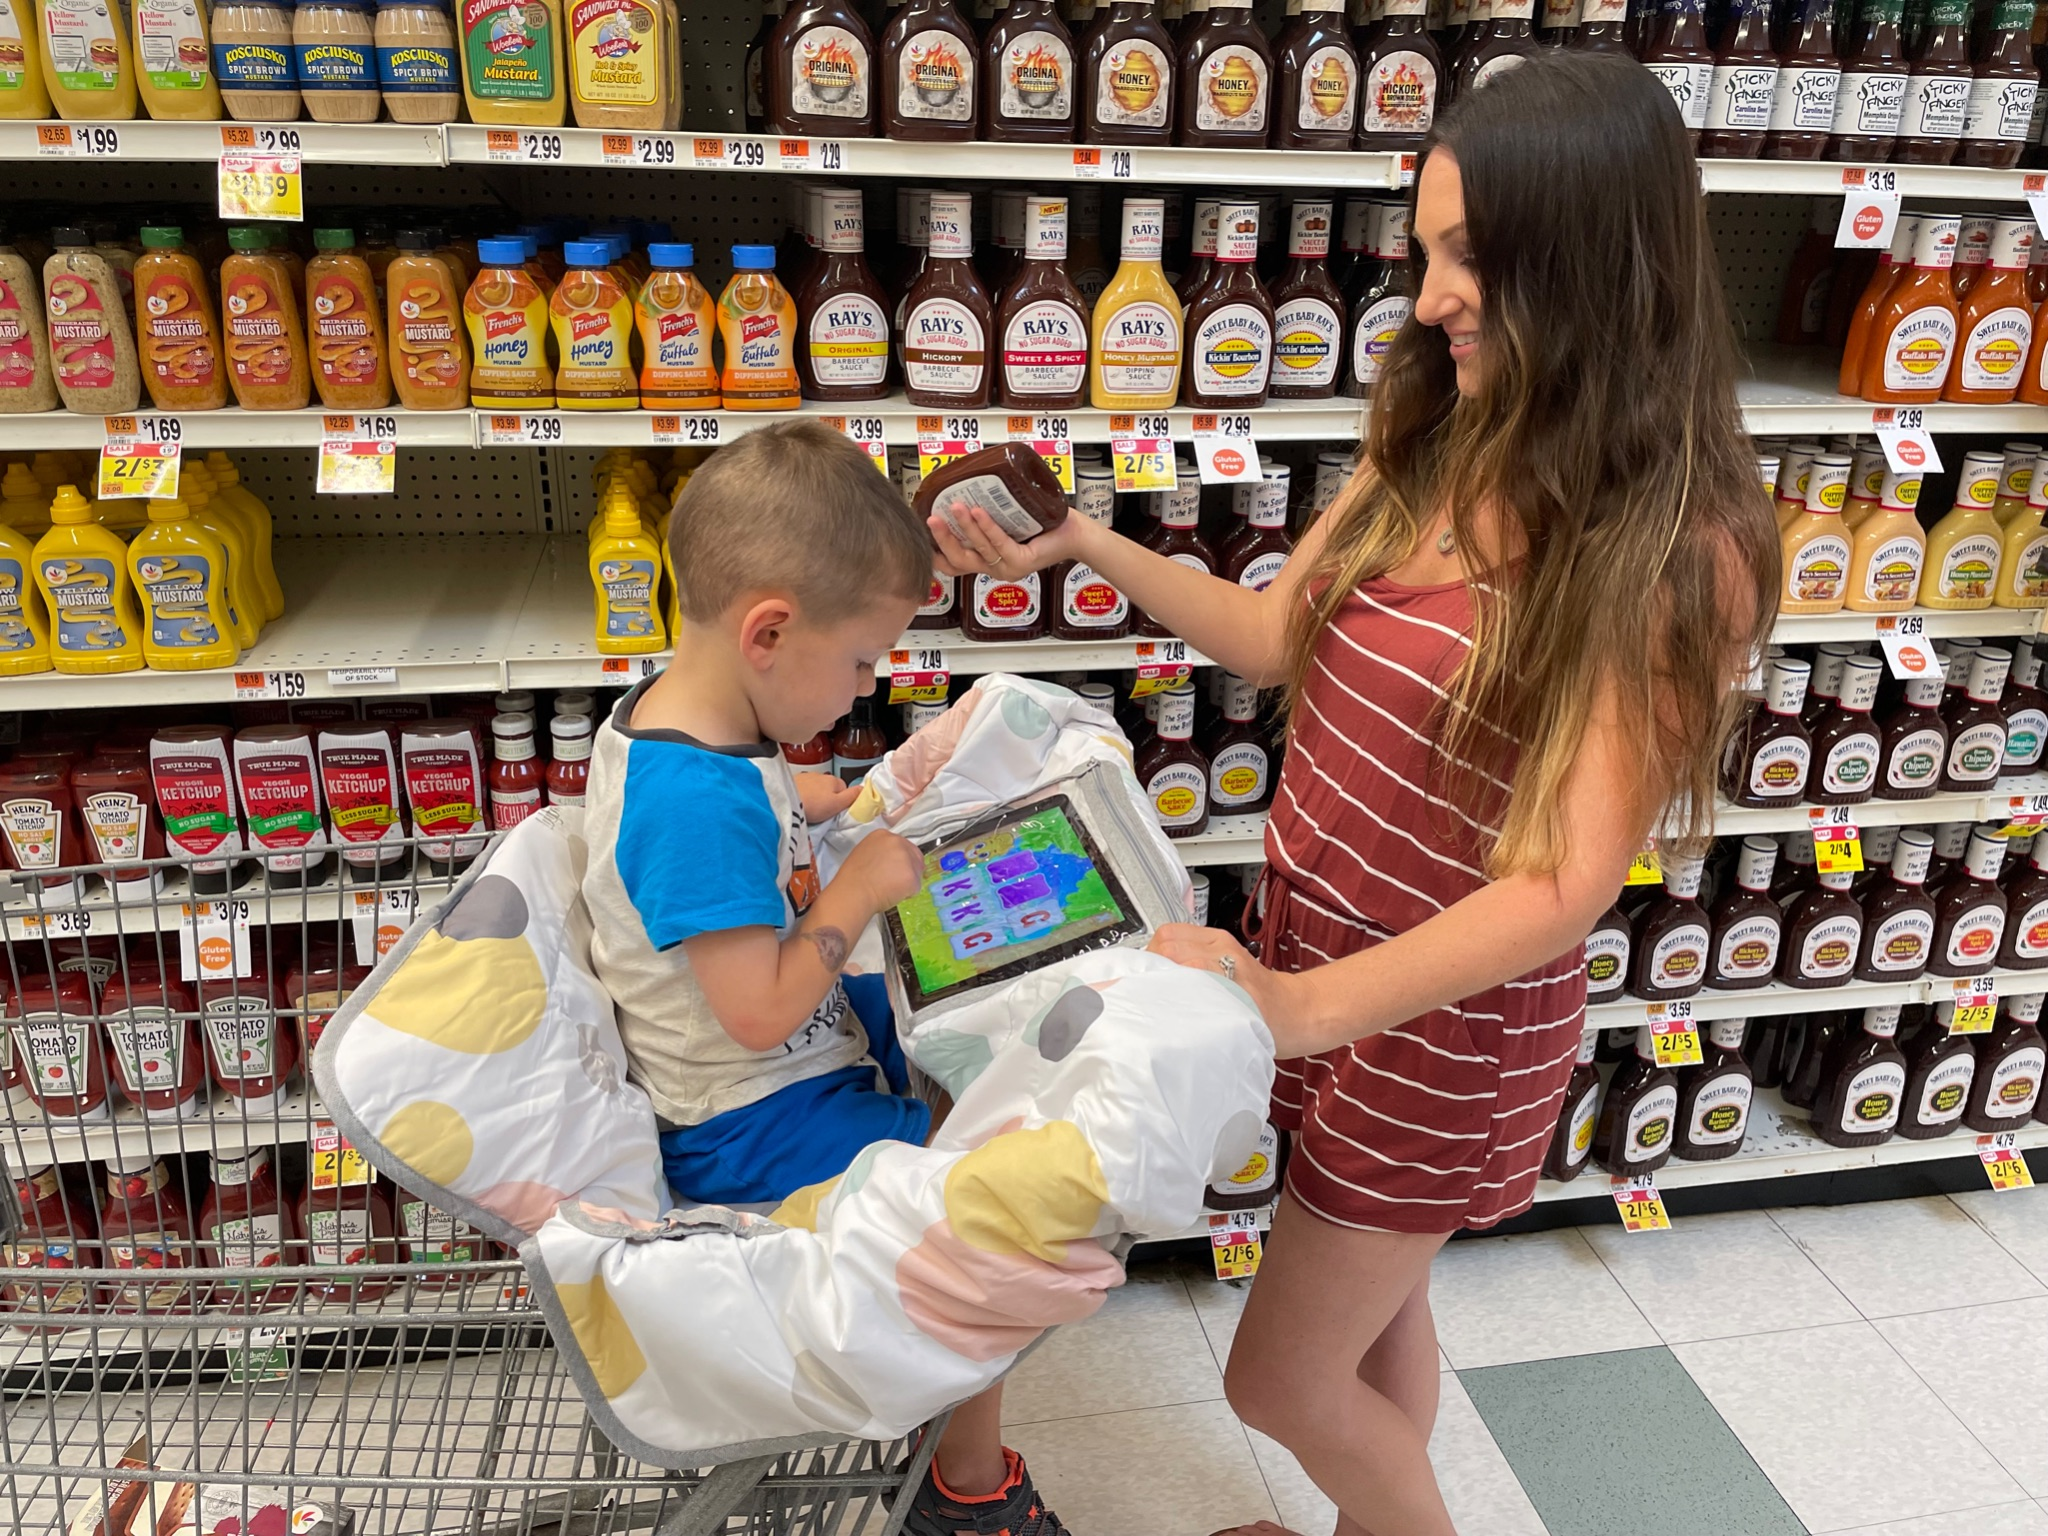 A shopping cart cover and waterproof outdoor blanket are both items you want to take with you on all your travels. Both of these products are made by Lulyboo, a company that you can trust for safe baby and toddler products.